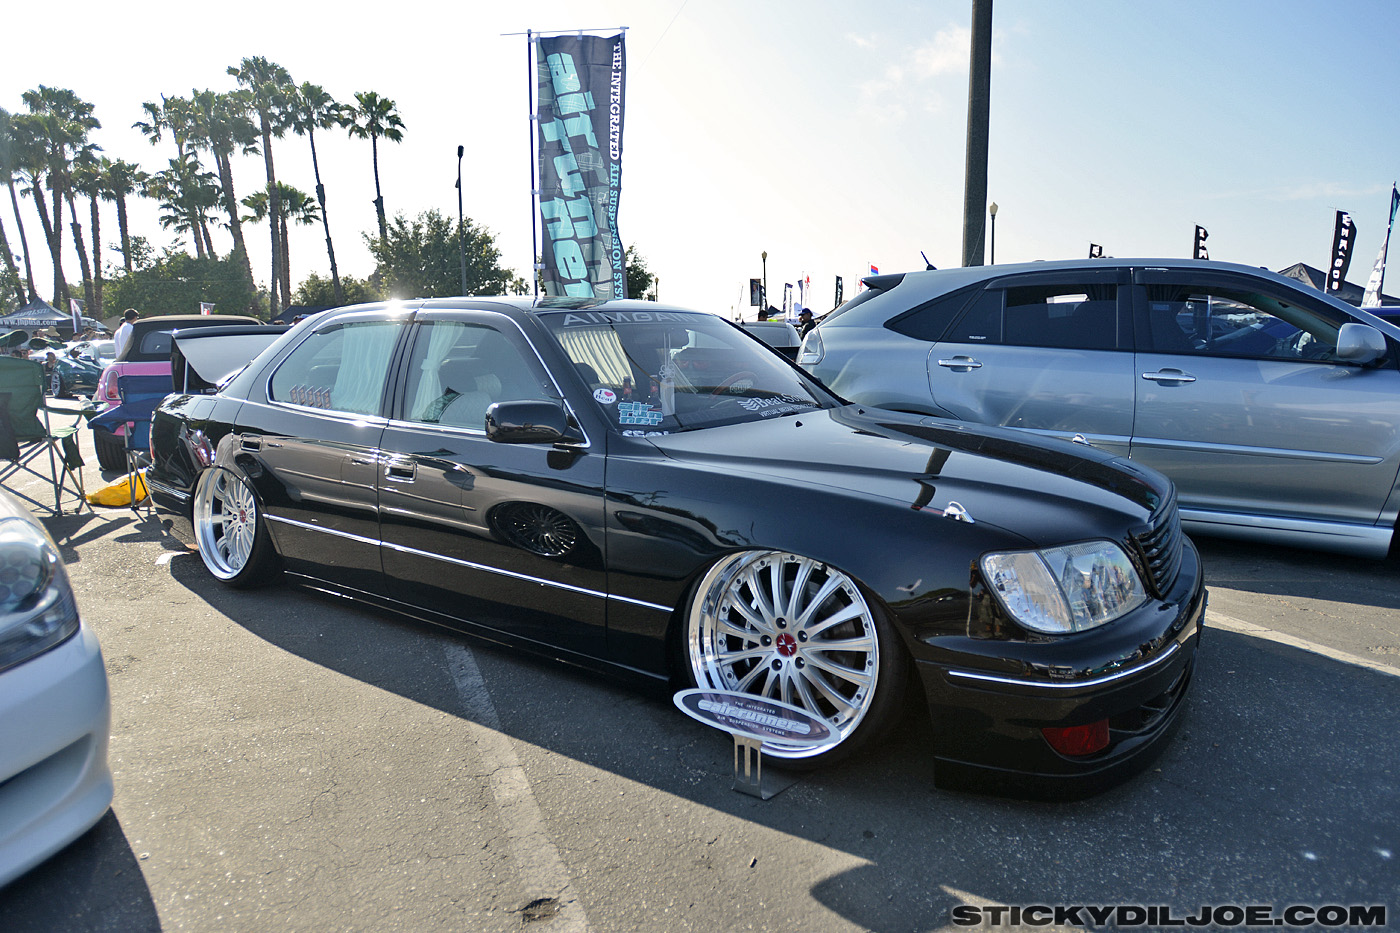 Wekfest LA 2012 Coverage…Part 4: The Late Afternoon, from ...